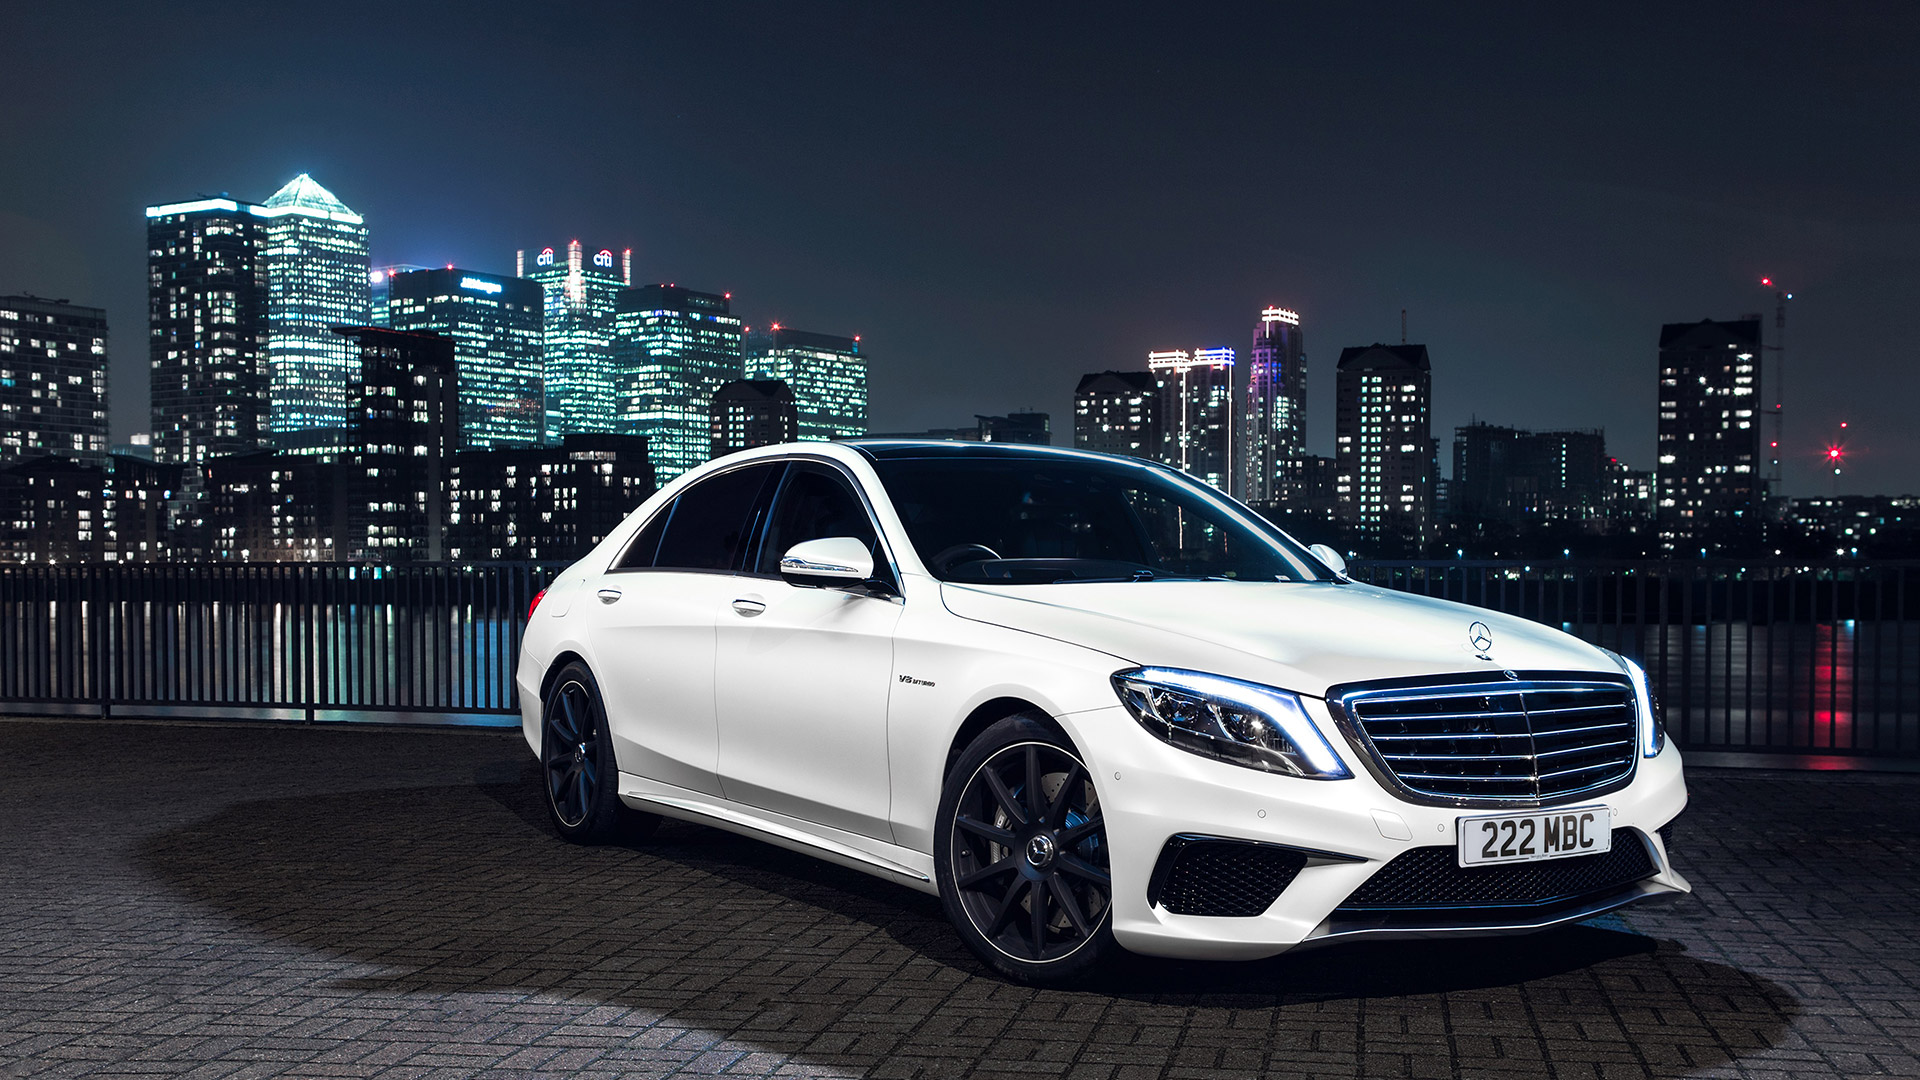 Mercedes-Benz S63 AMG Coupe 2018 STD